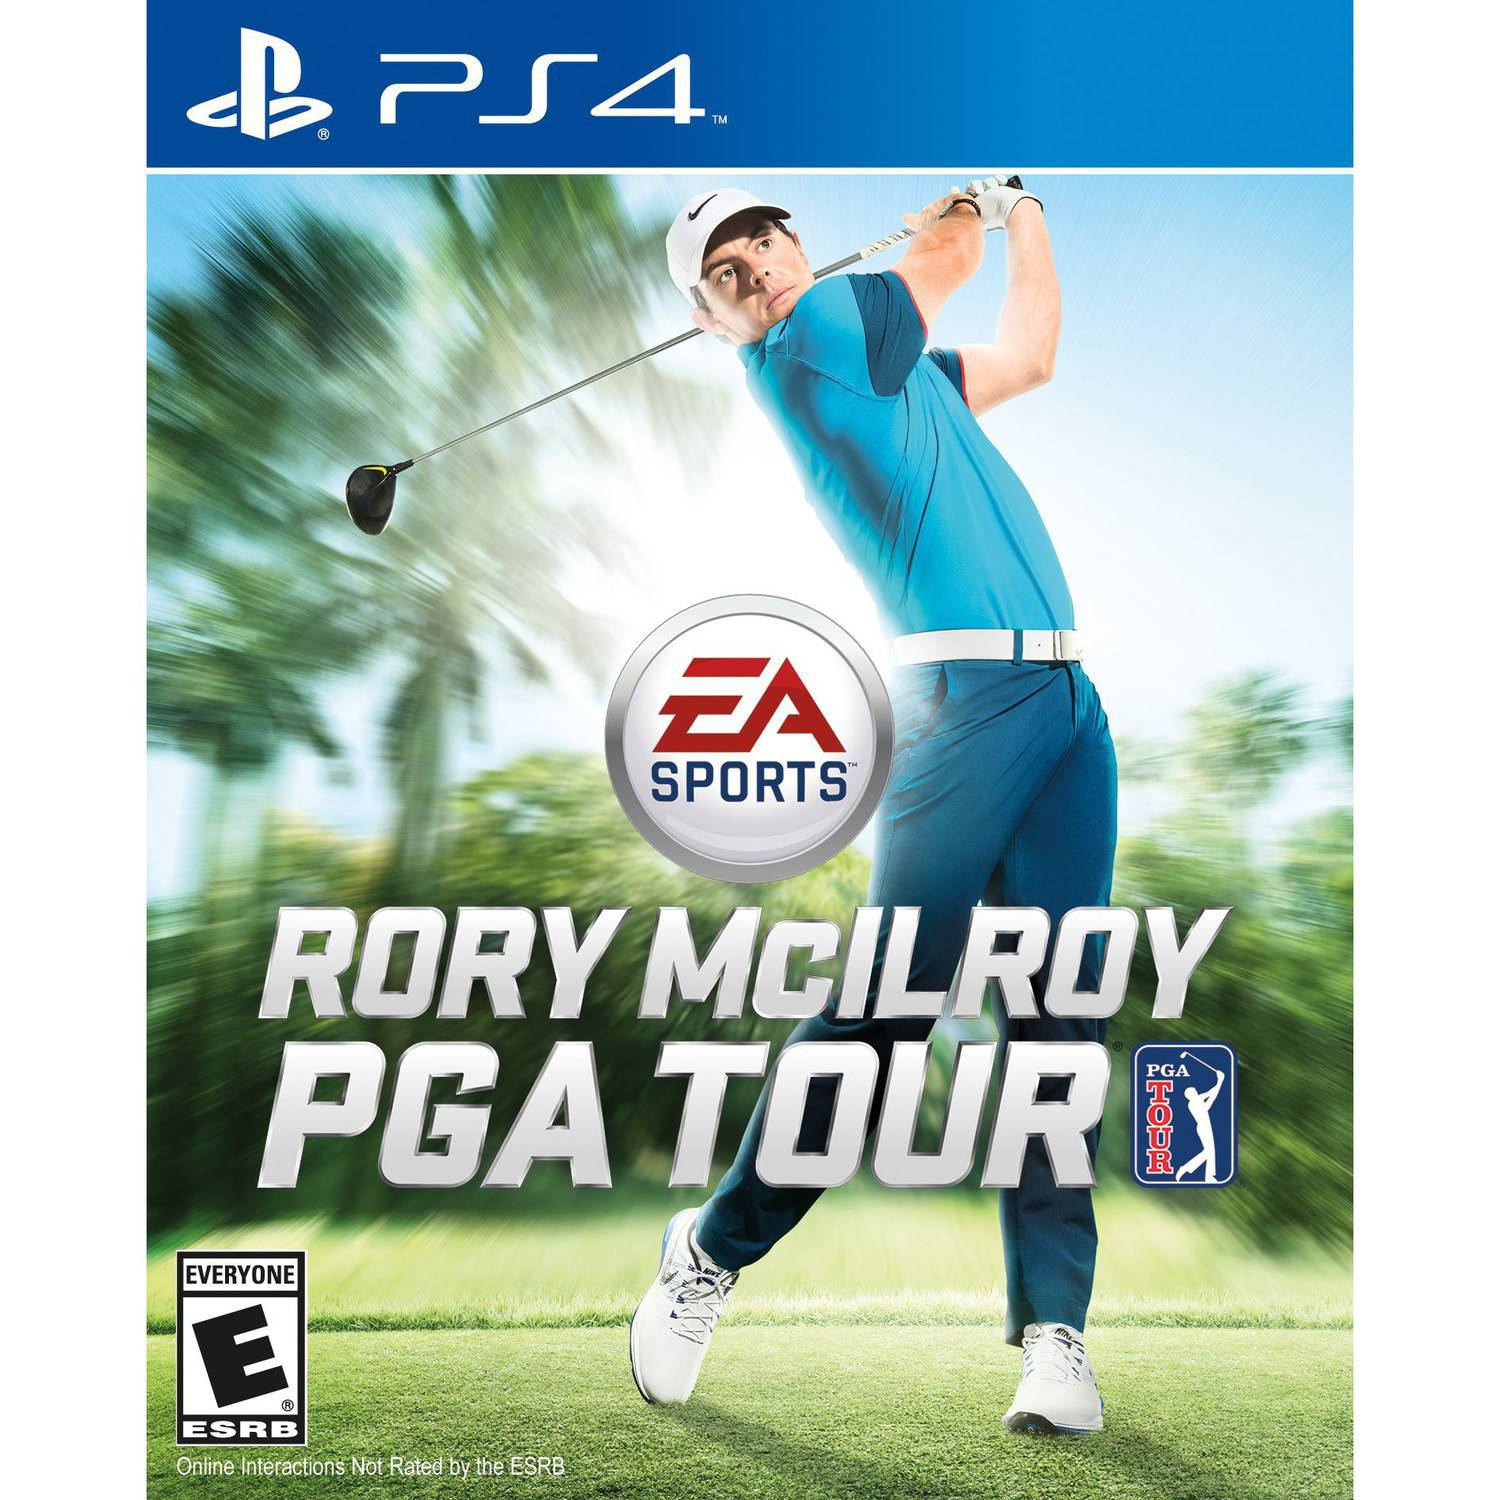 Rory McIlroy PGA Tour (PS4) - Pre-Owned